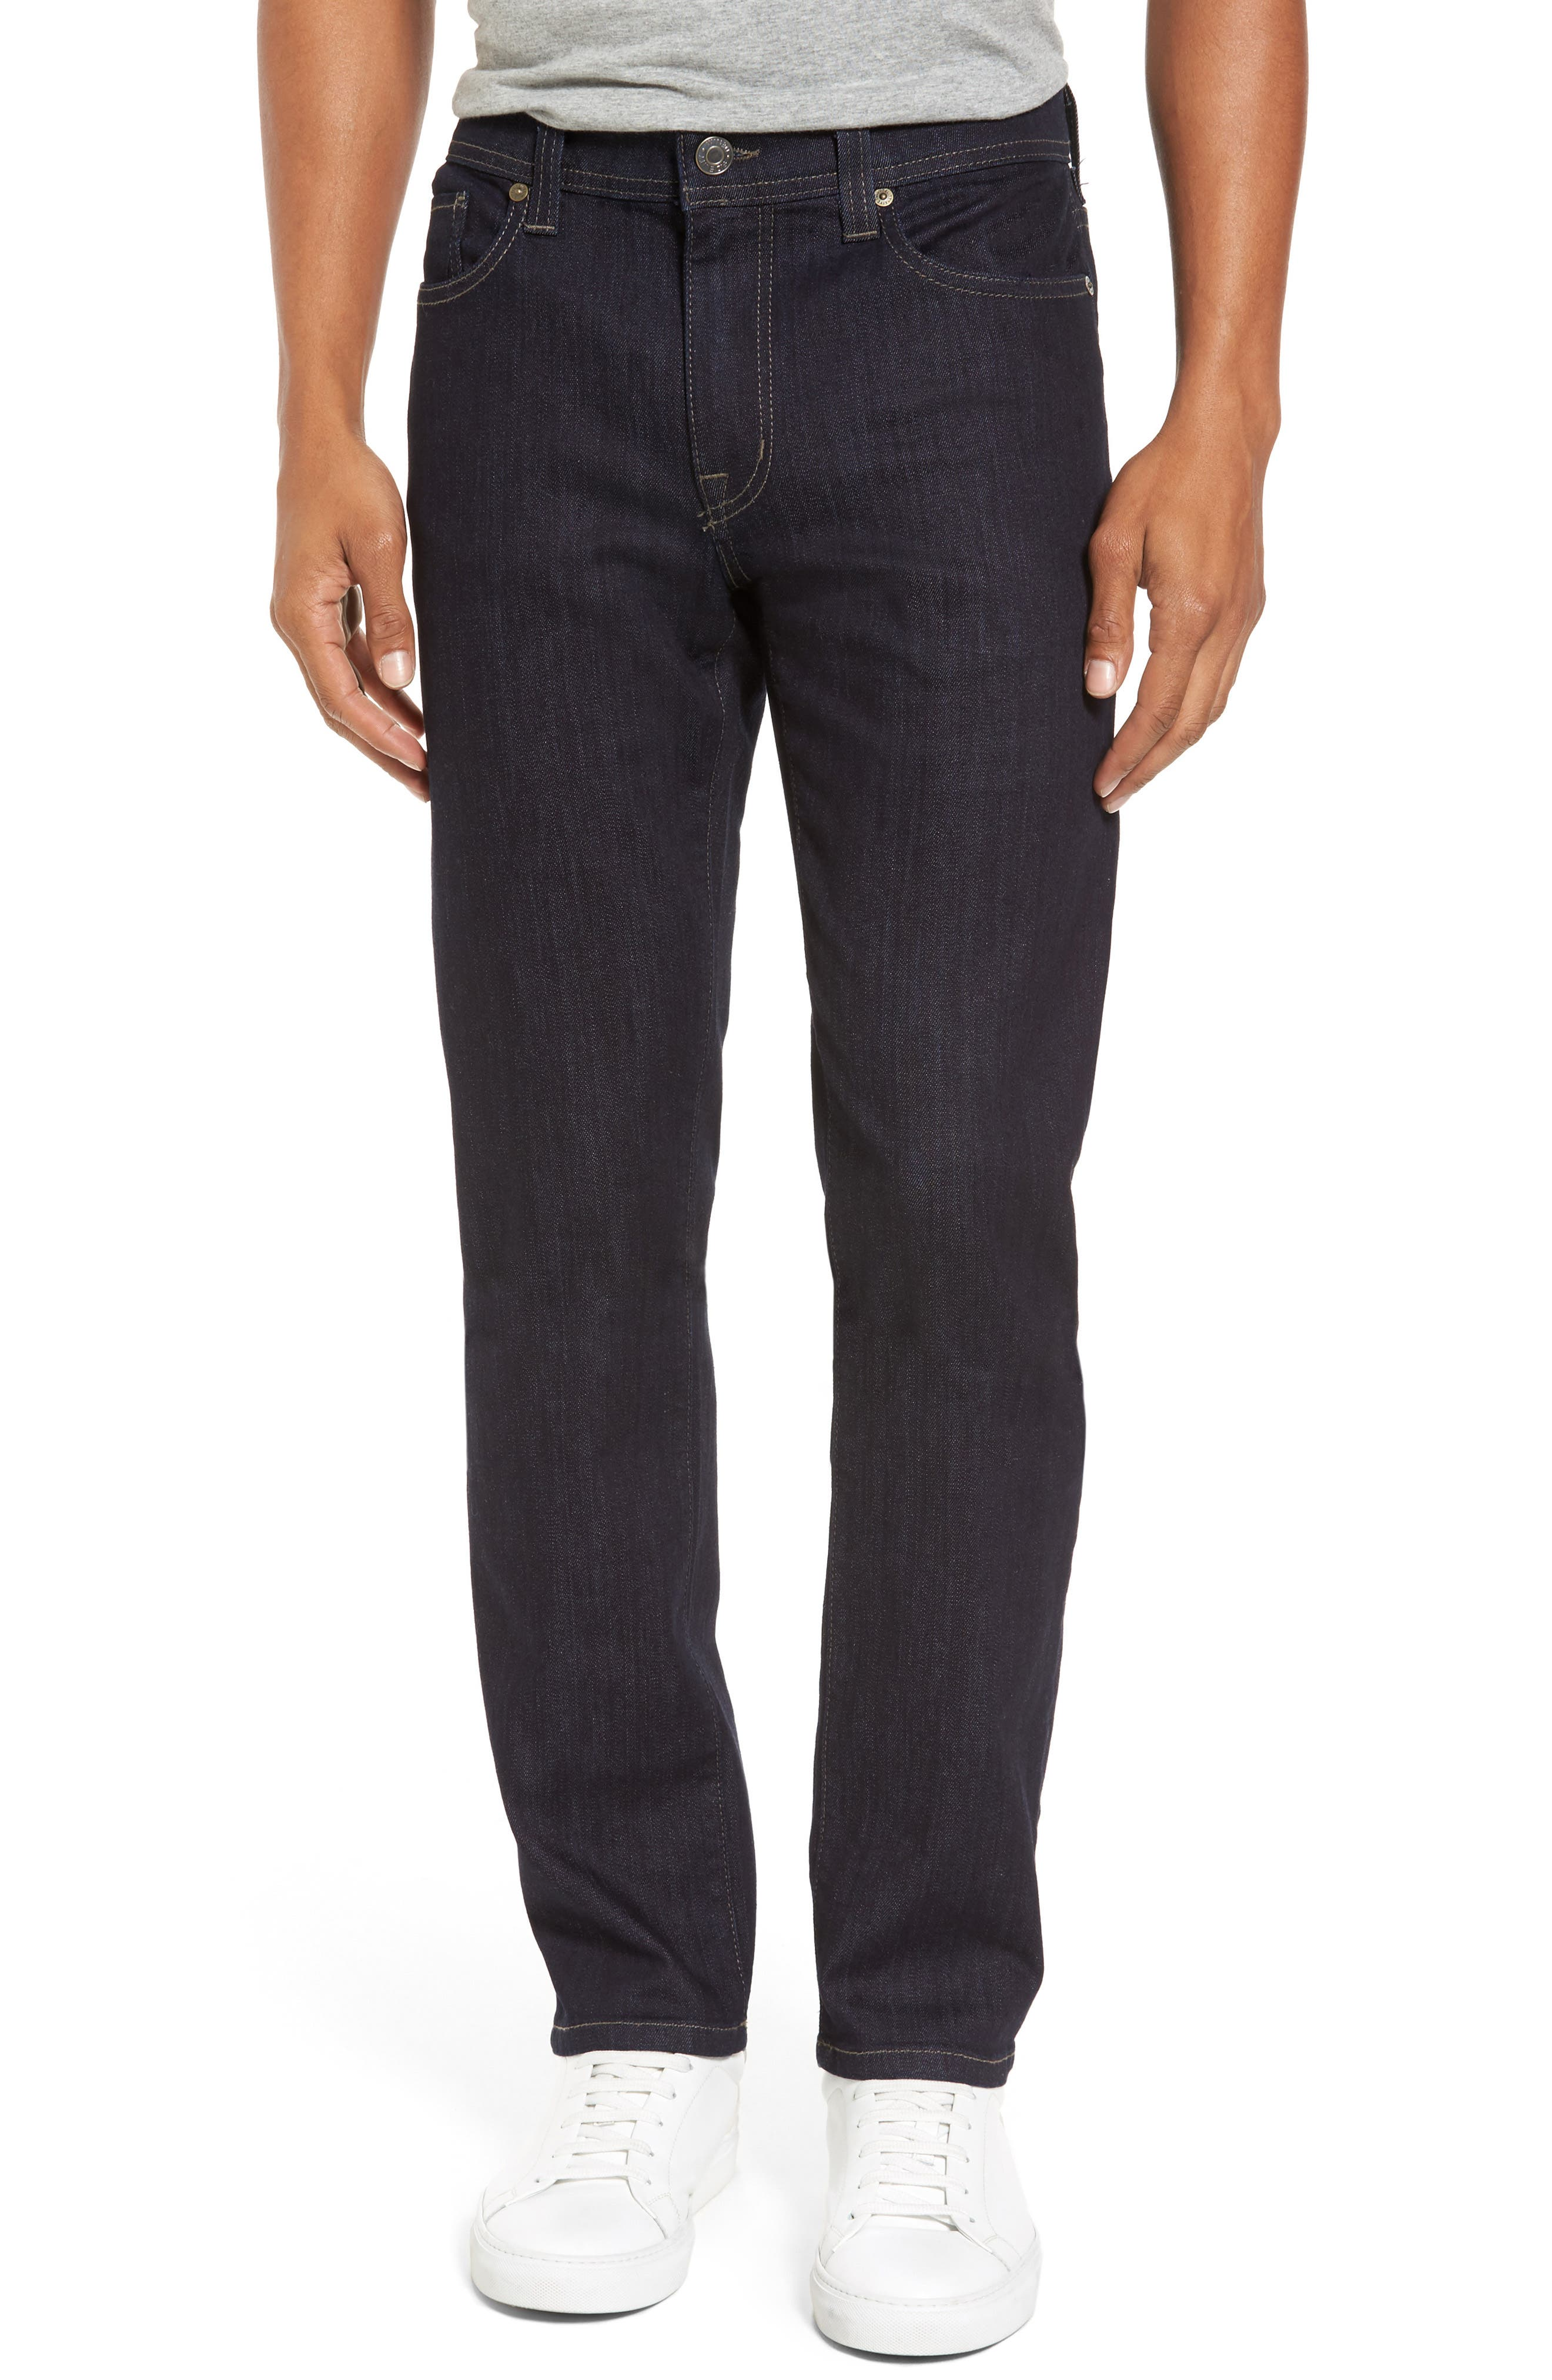 Jimmy Slim Straight Leg Jeans,                         Main,                         color, Galaxy Rinse